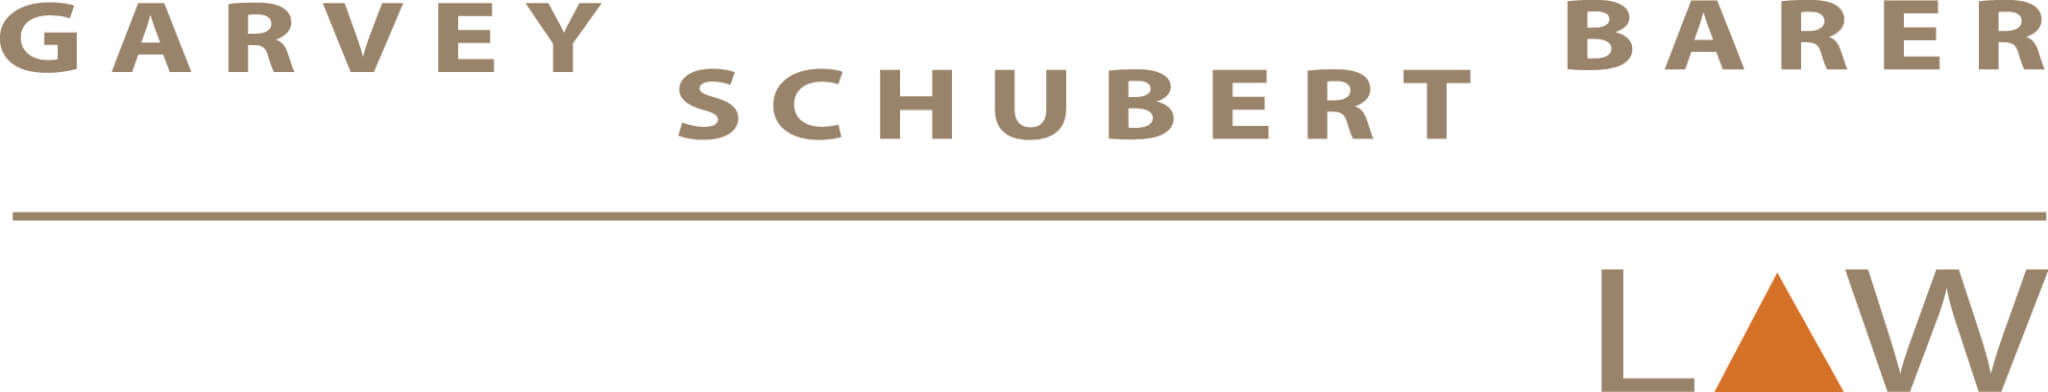 Event Sponsor - Garvey Schubert Barer